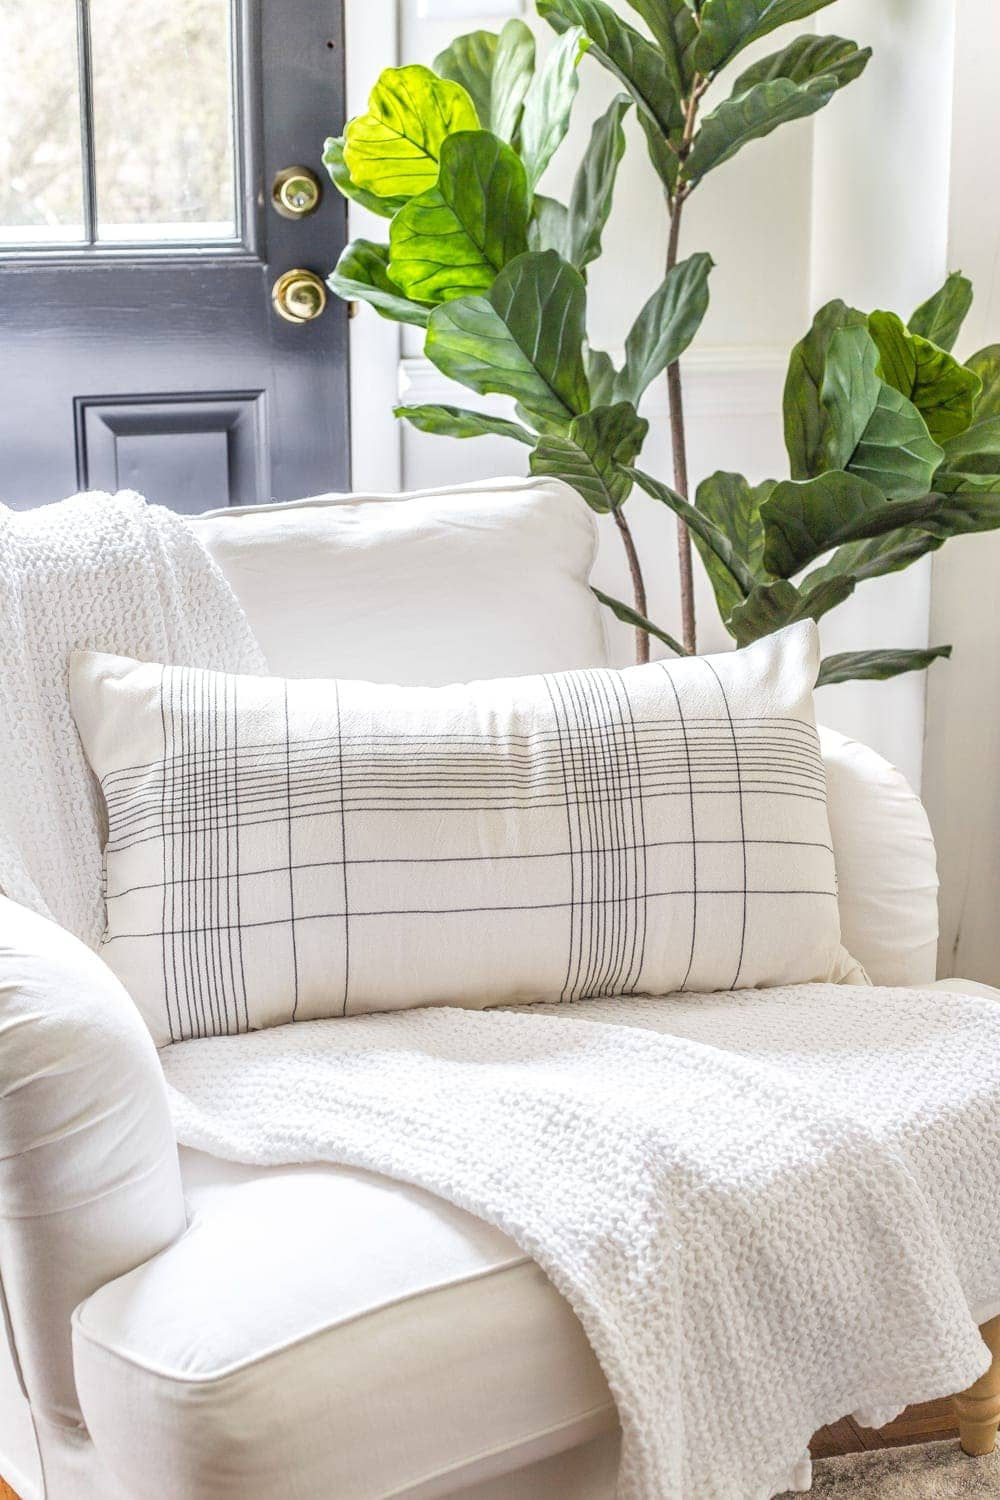 3 items you can repurpose into DIY no-sew throw pillows   How to make a throw pillow from a kitchen towel.